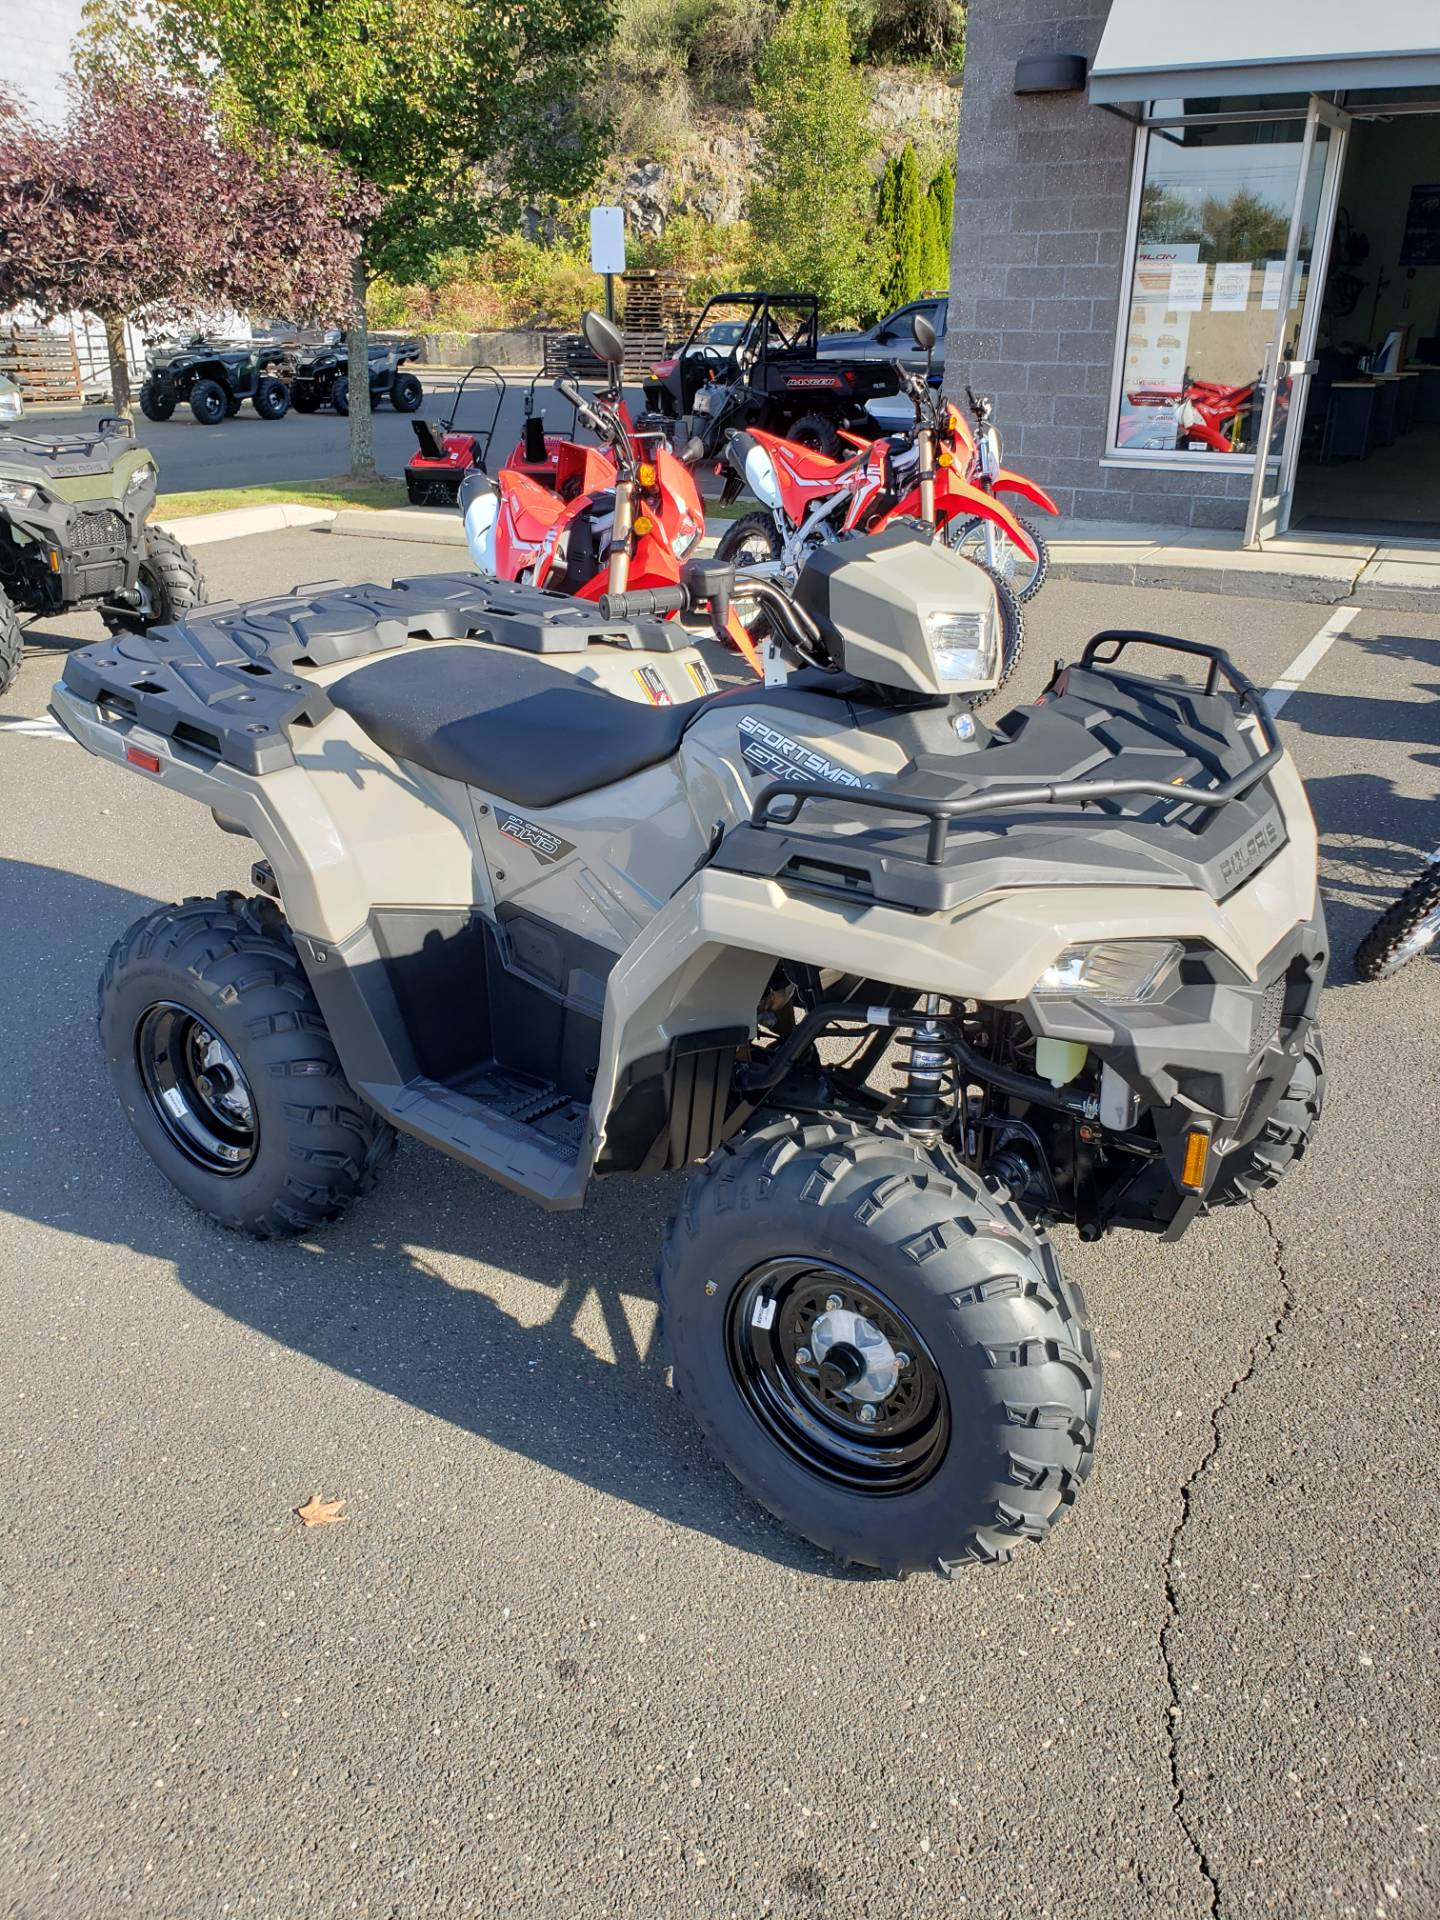 2021 Polaris Sportsman 570 in Danbury, Connecticut - Photo 2